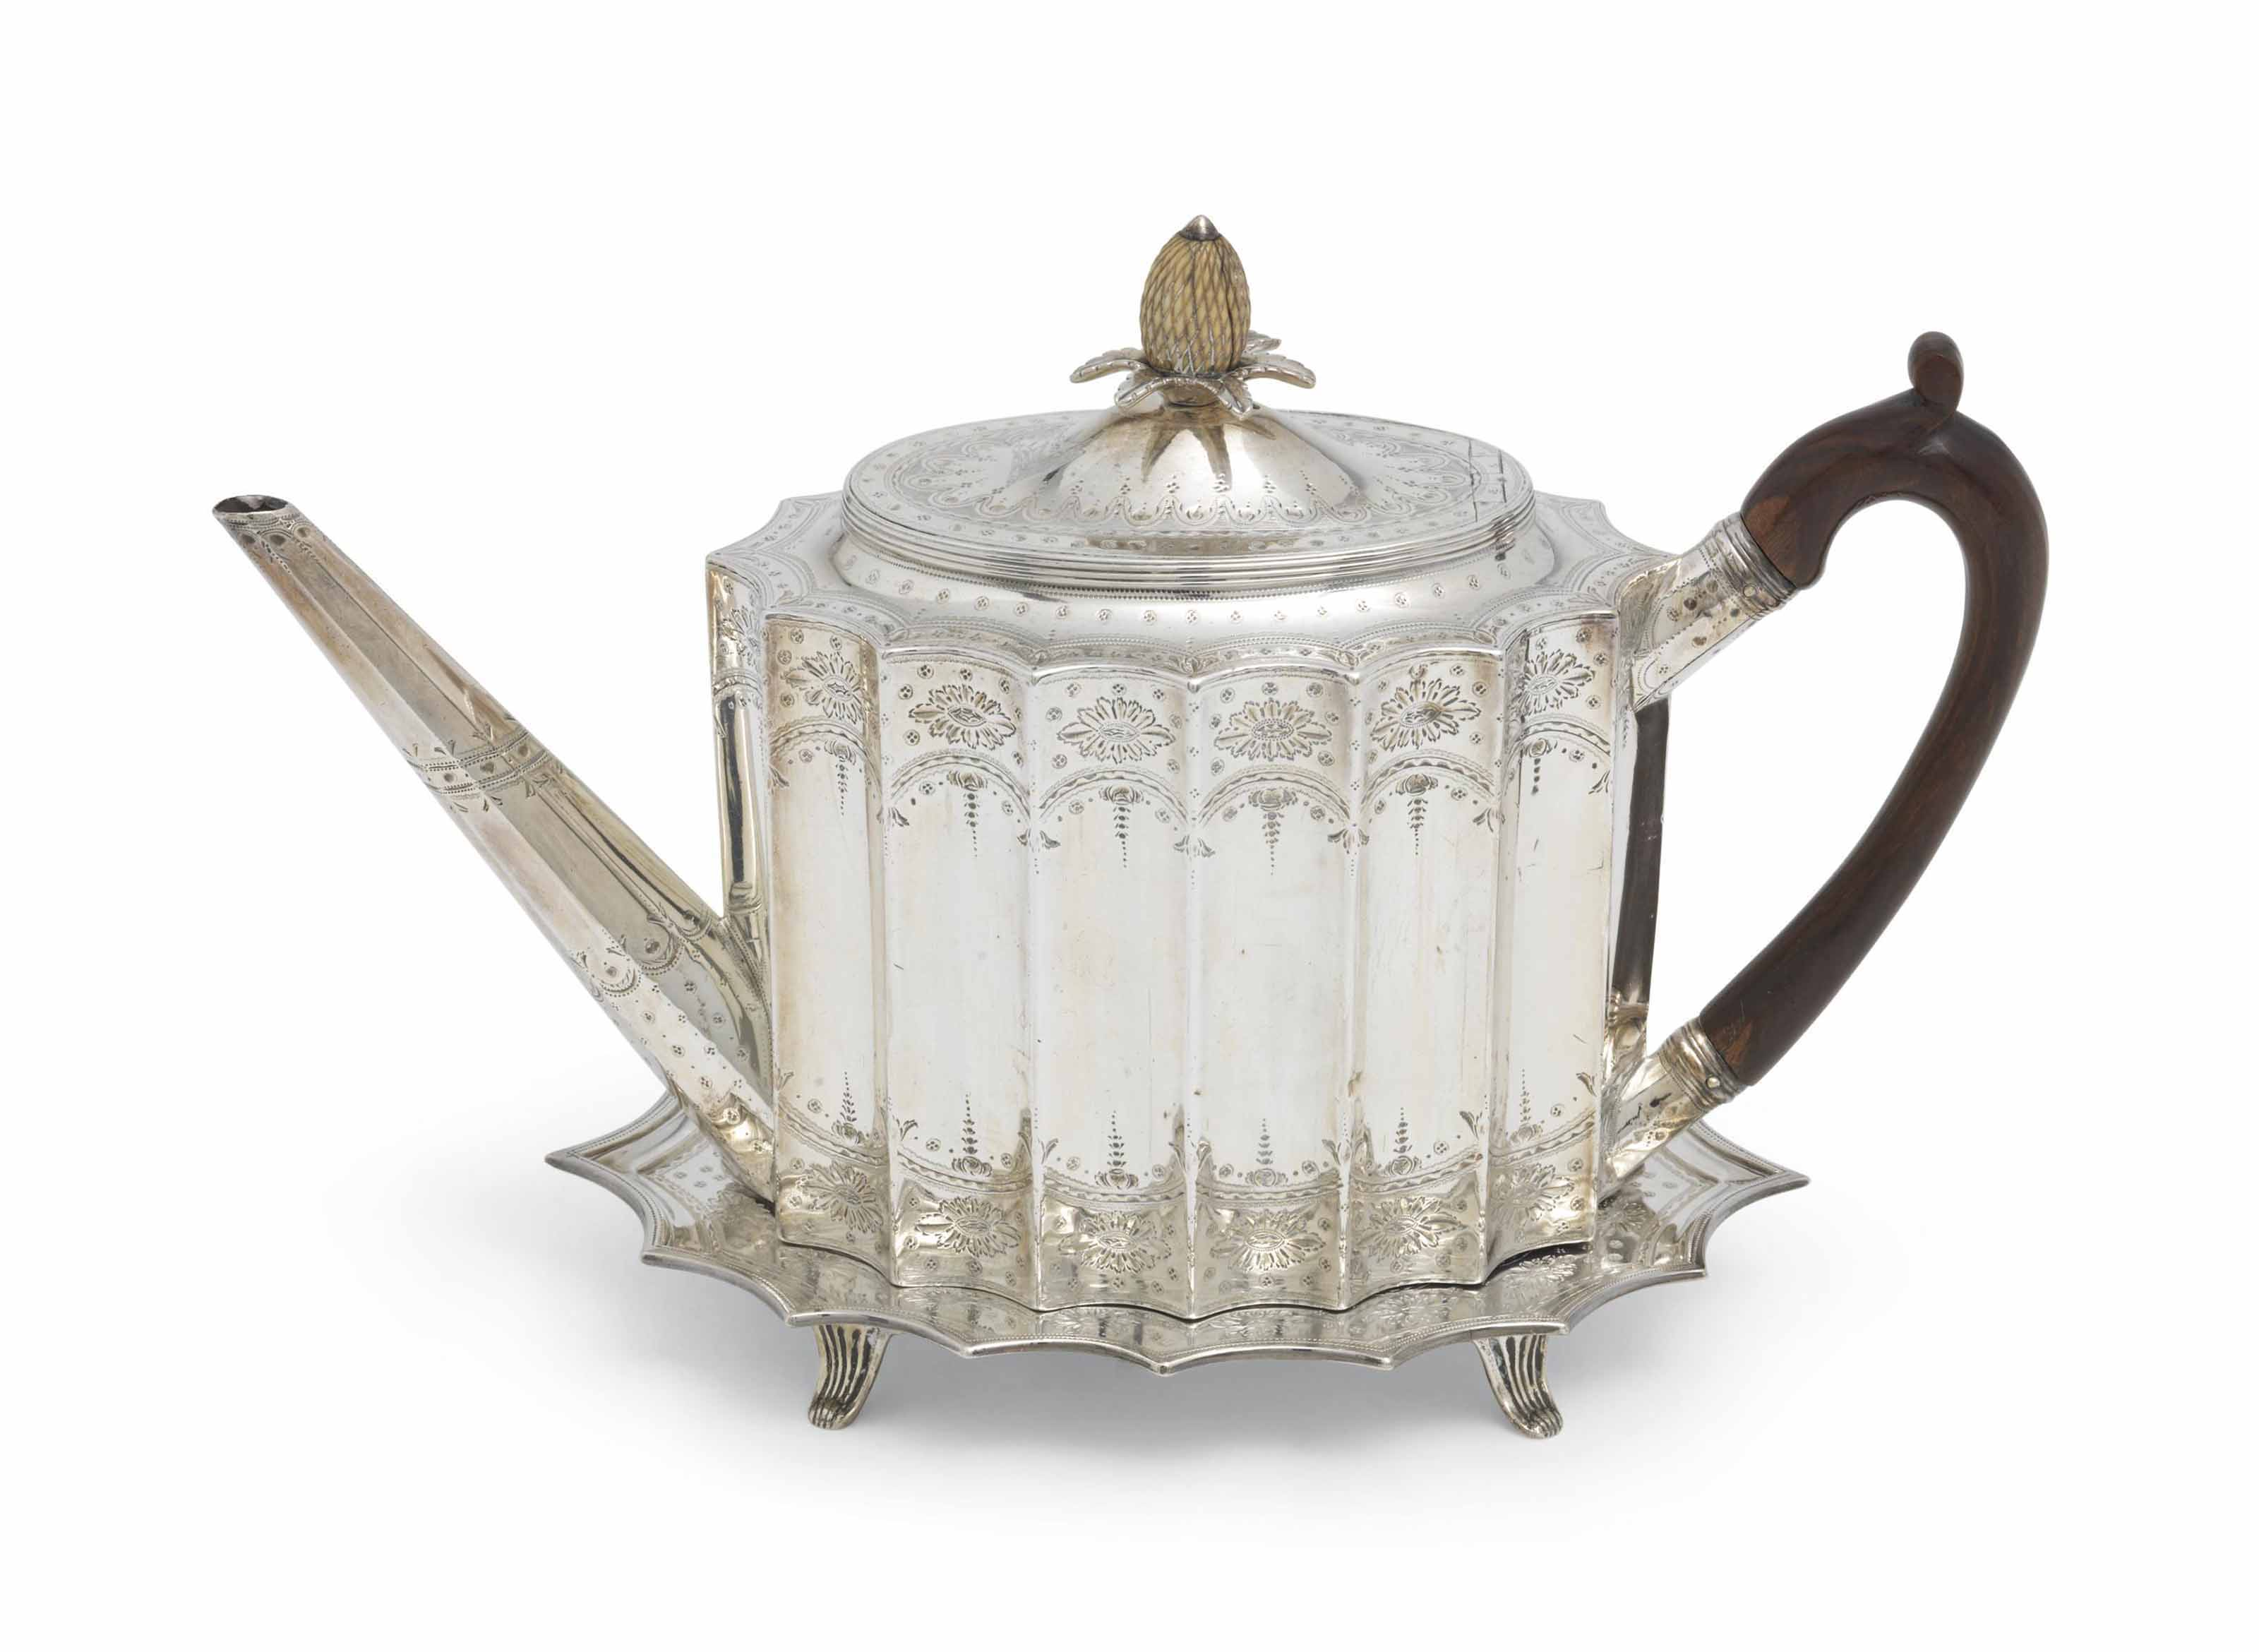 A GEORGE III SILVER TEAPOT AND STAND